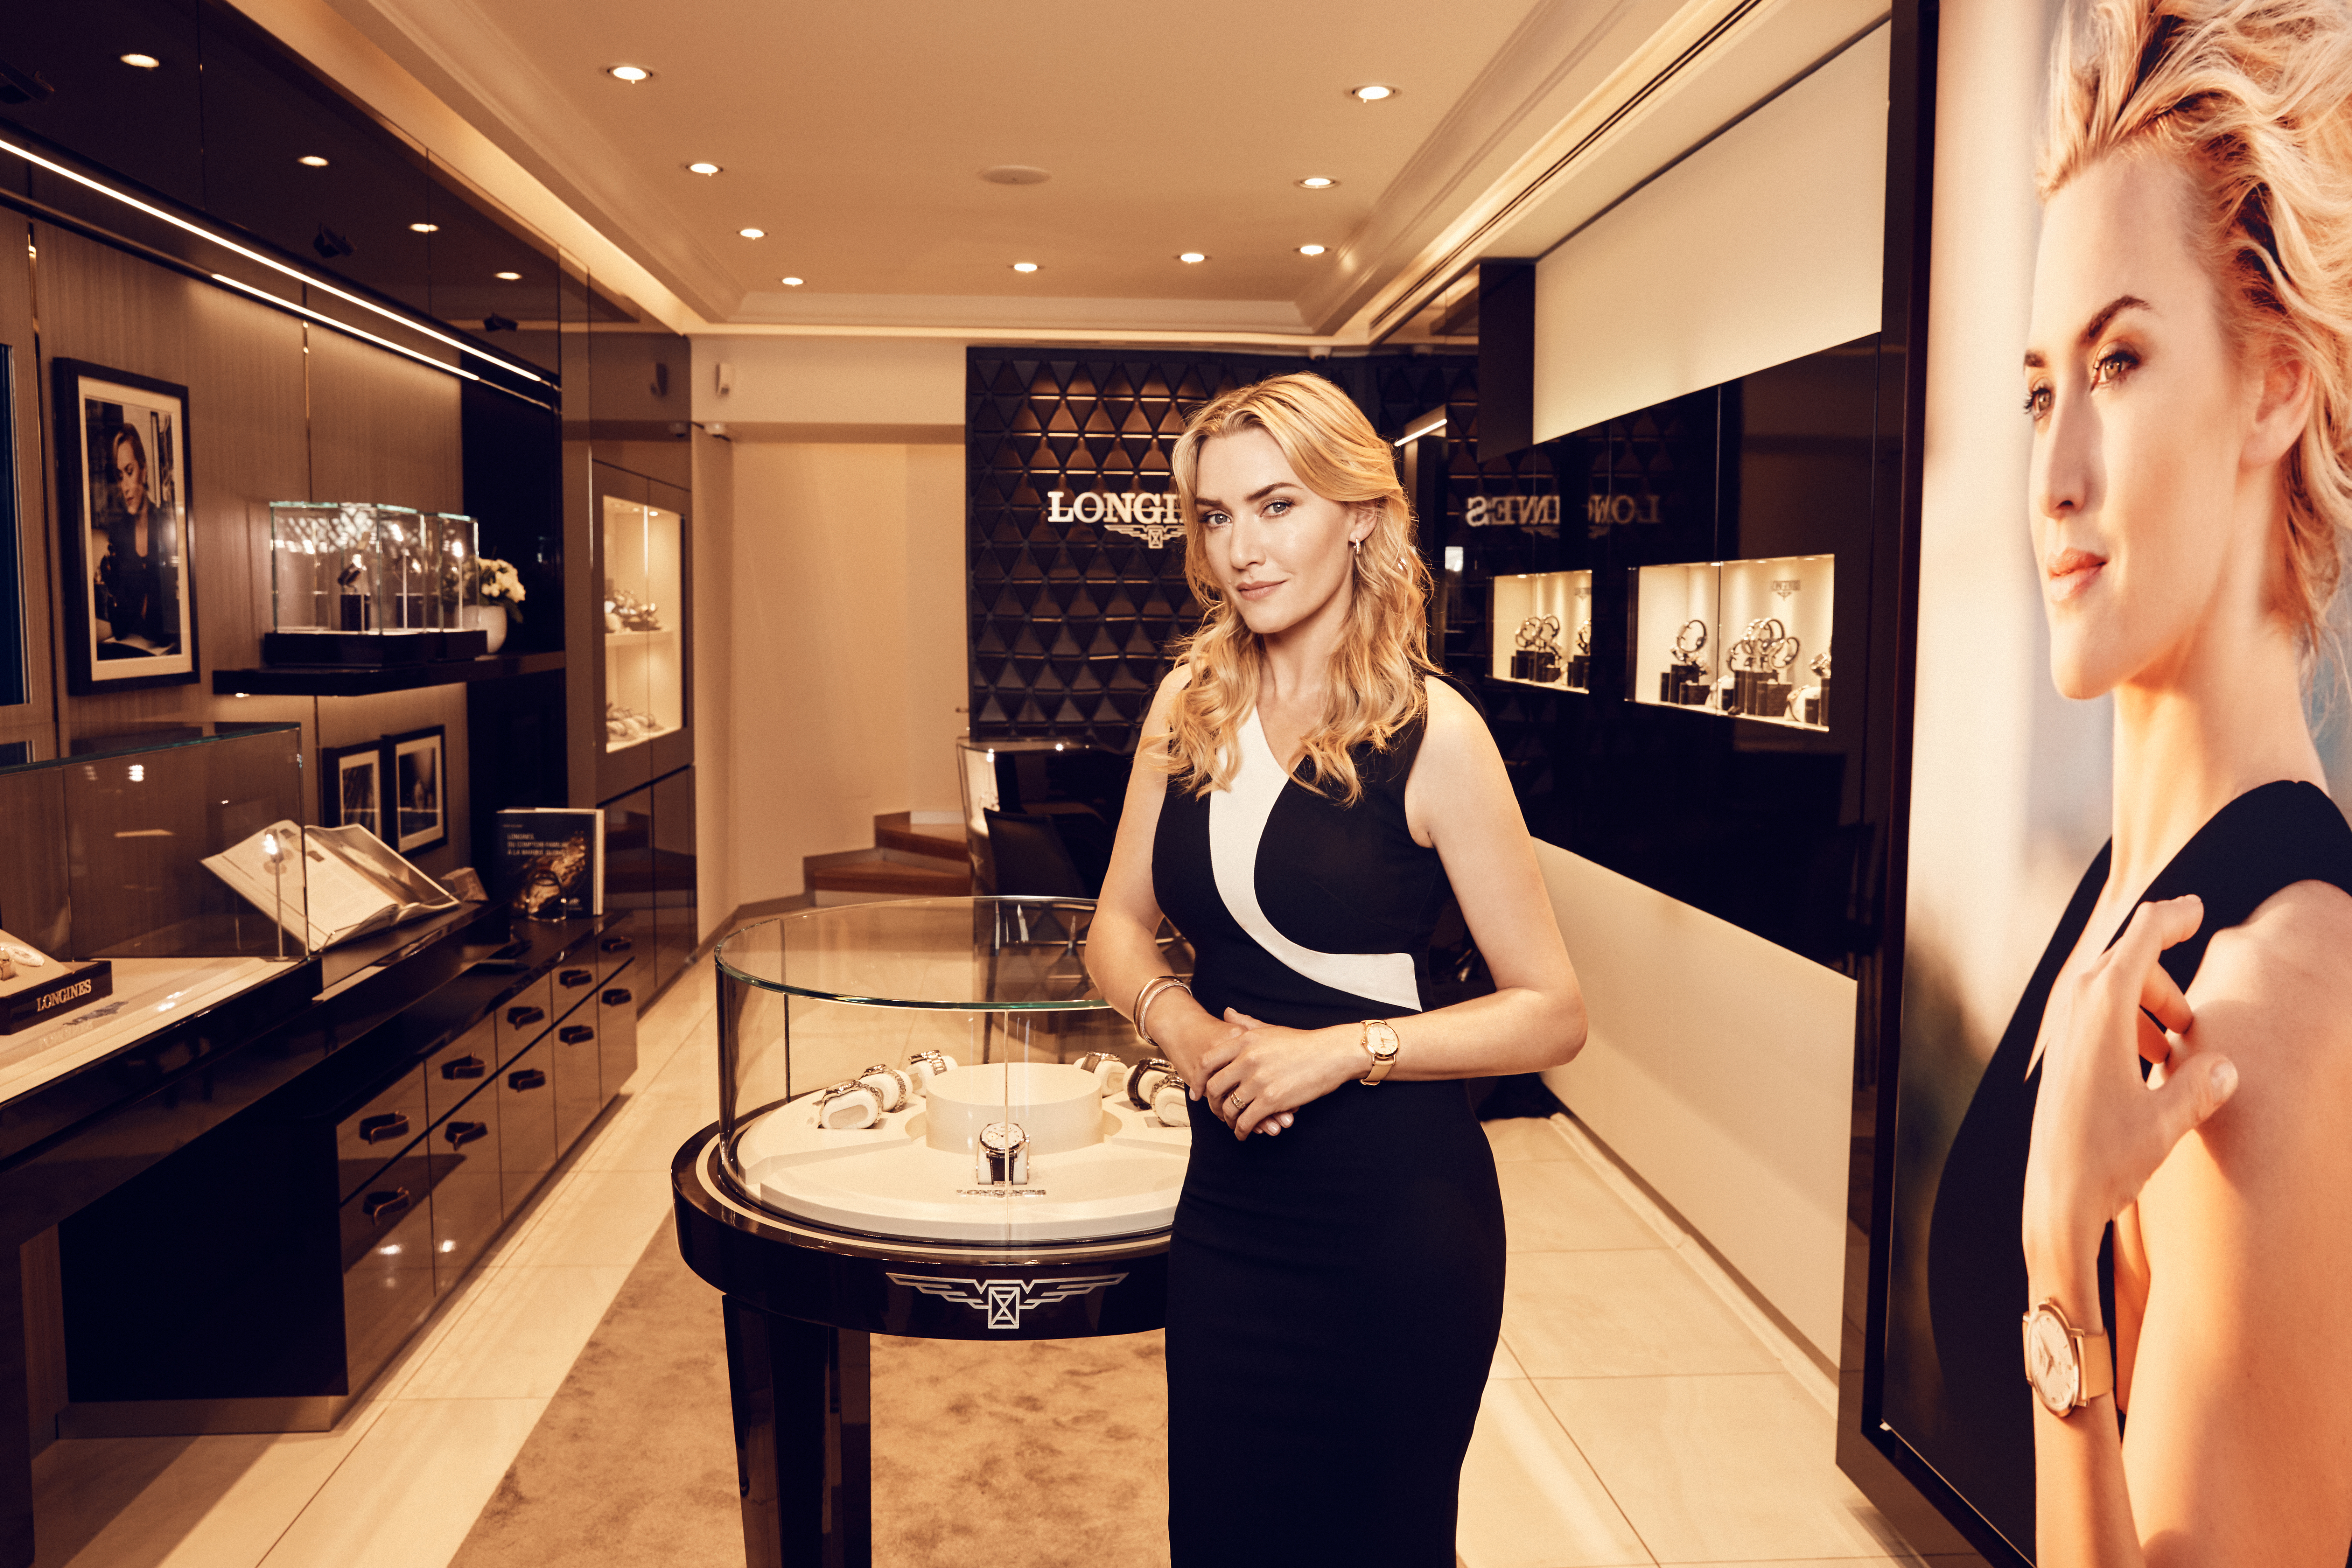 3 models of the Flagship Heritage by Kate Winslet are being auctioned online for the benefit of The Golden Hat Foundation co-founded by the British actress. (Photo: Longines)